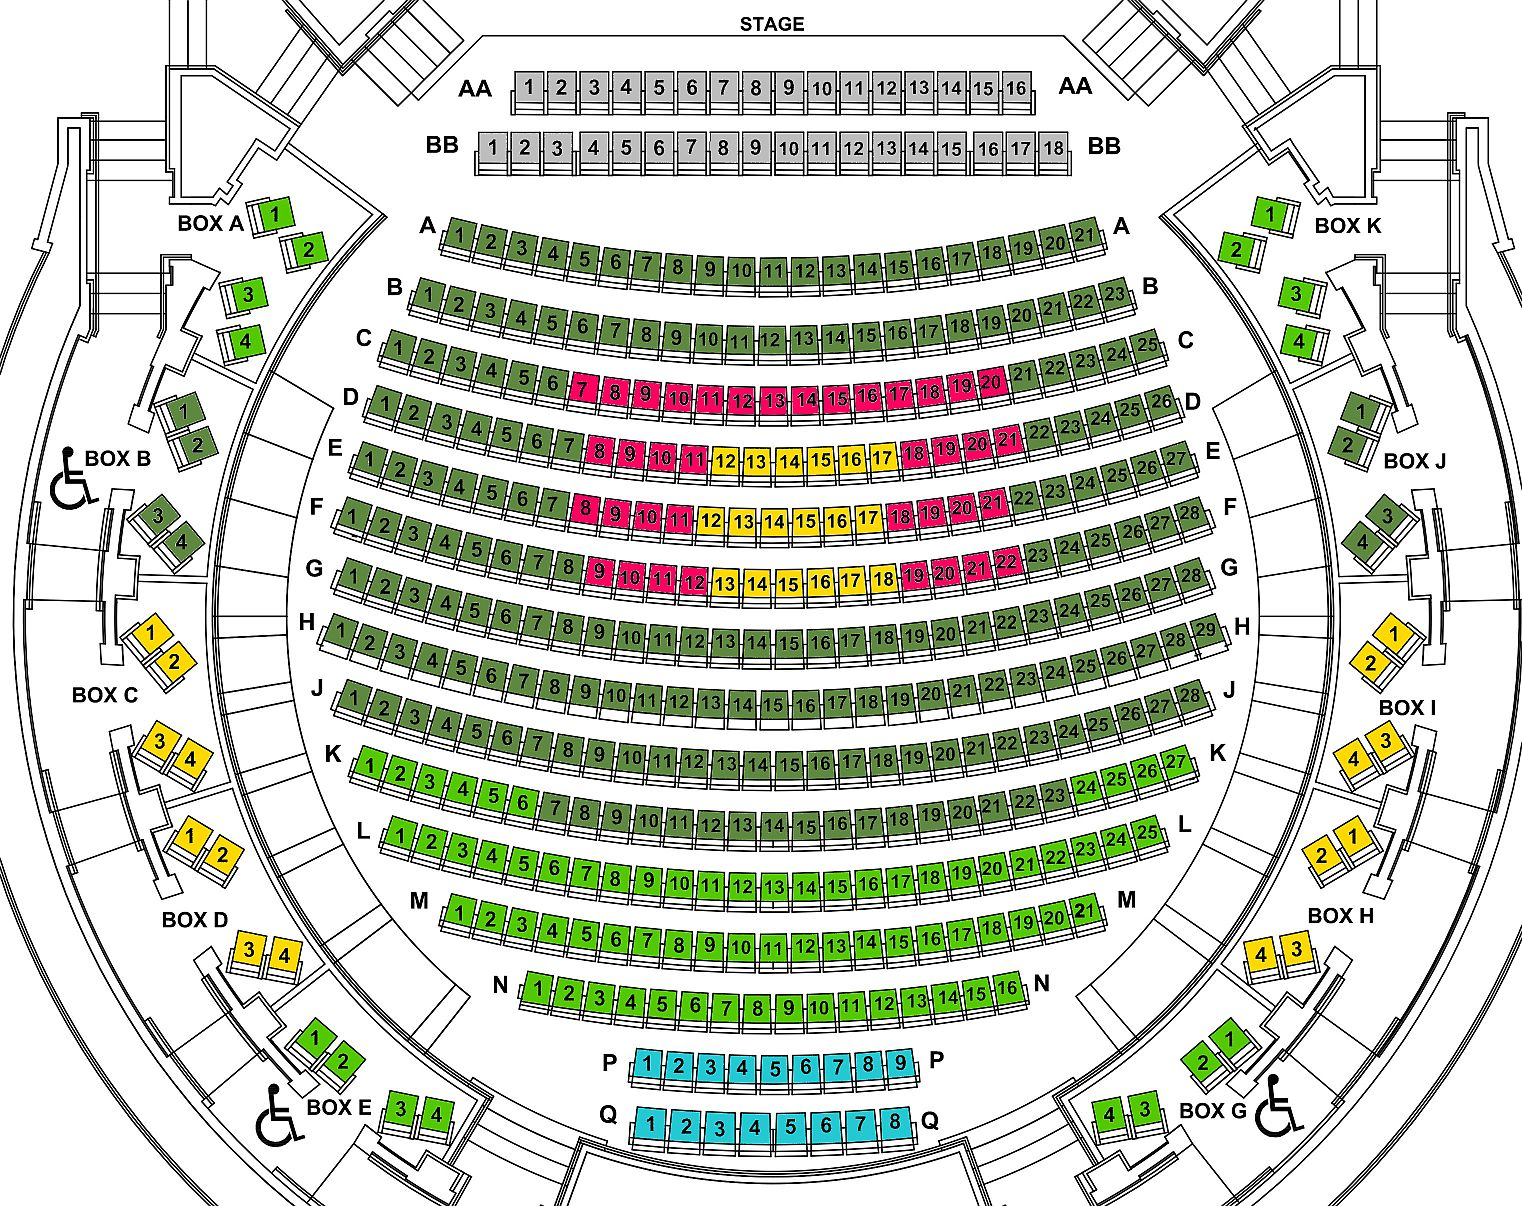 Seating Chart Breakdown for the show displaying the VIP, Premium, Preferred, General, and Limited Offer seating areas for the show on June 15.